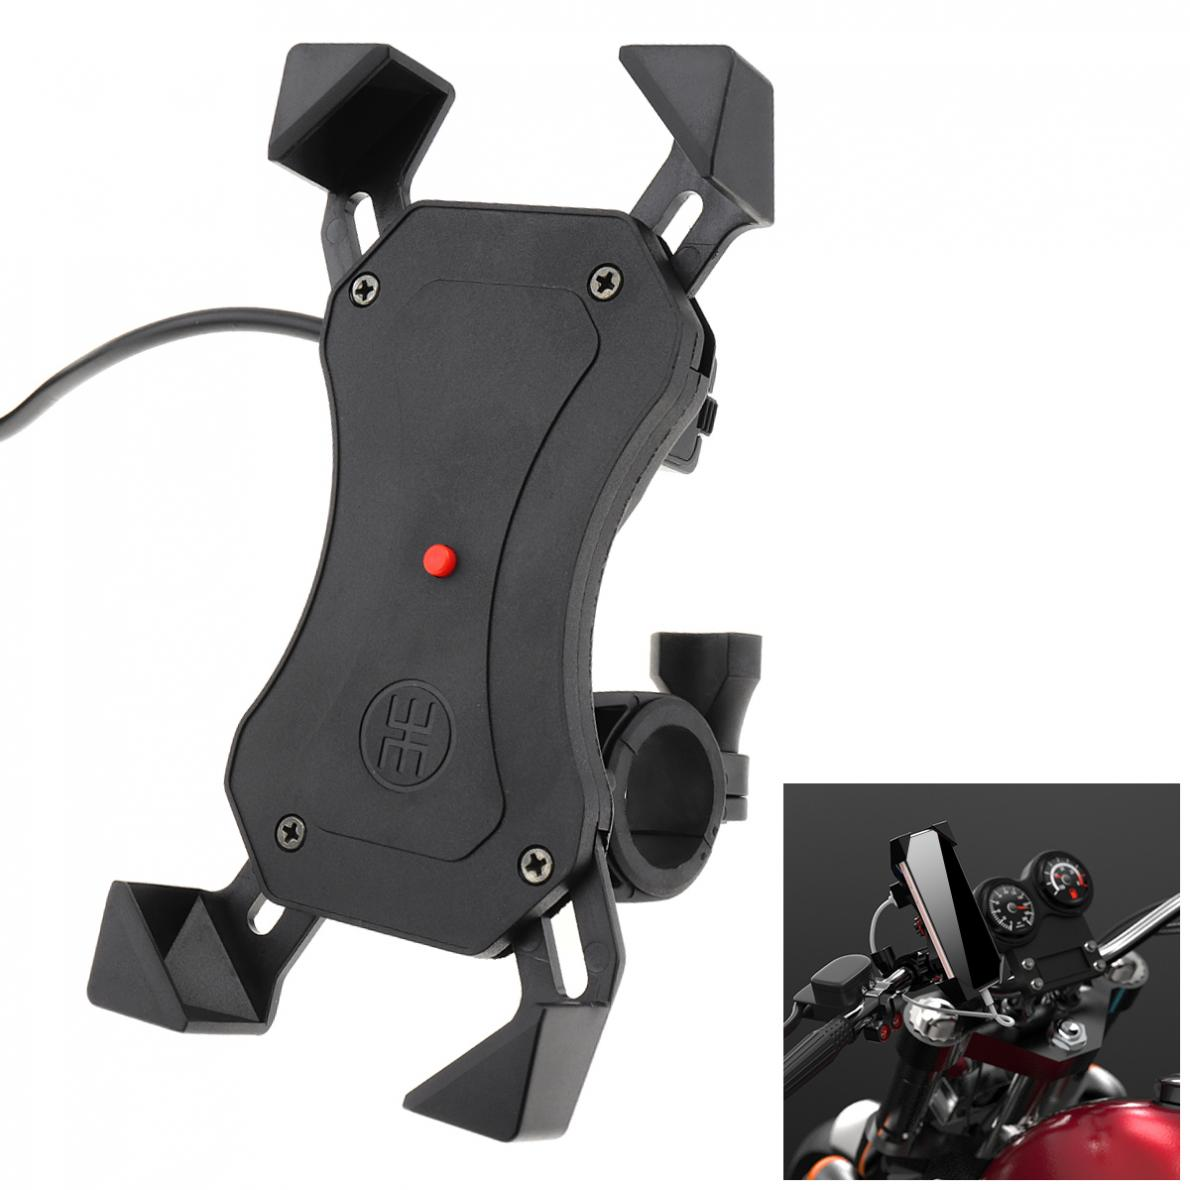 Universal Aluminum Alloy Motorcycle Mobile Phone Holder Support Telephone Moto Holder For GPS Bike Handlebar Holder